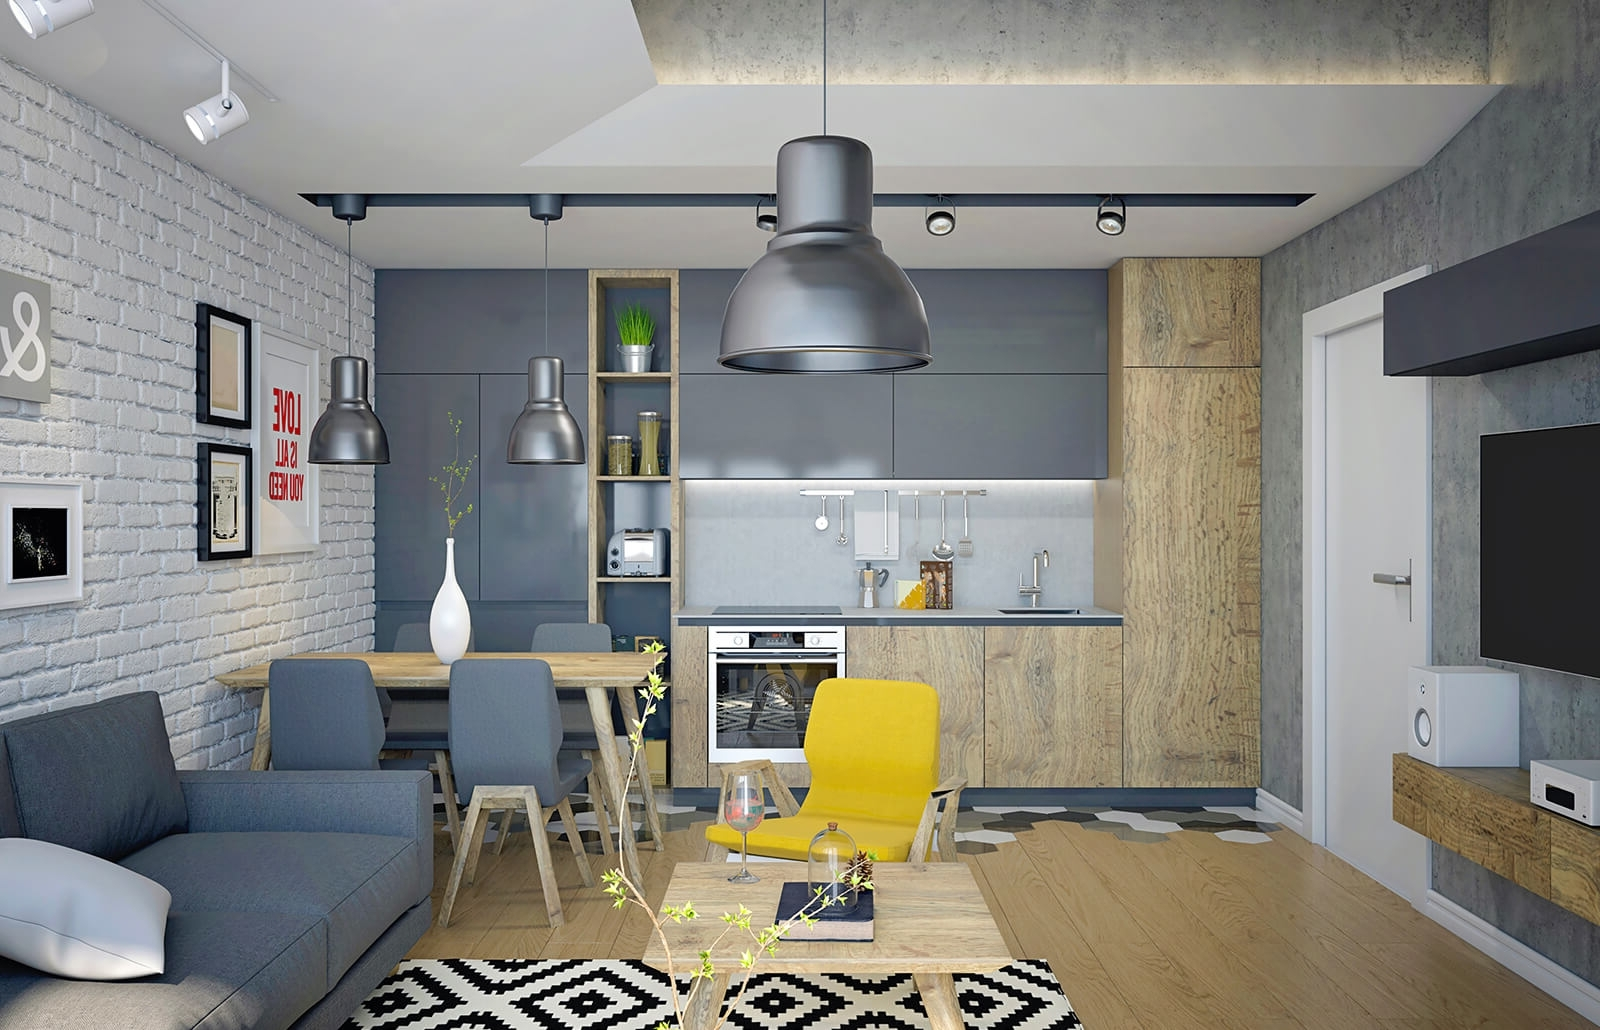 Feng Shui Studio Apartment Layouts And Ideas | Lovetoknow Feng Shui Small Living Room Layout